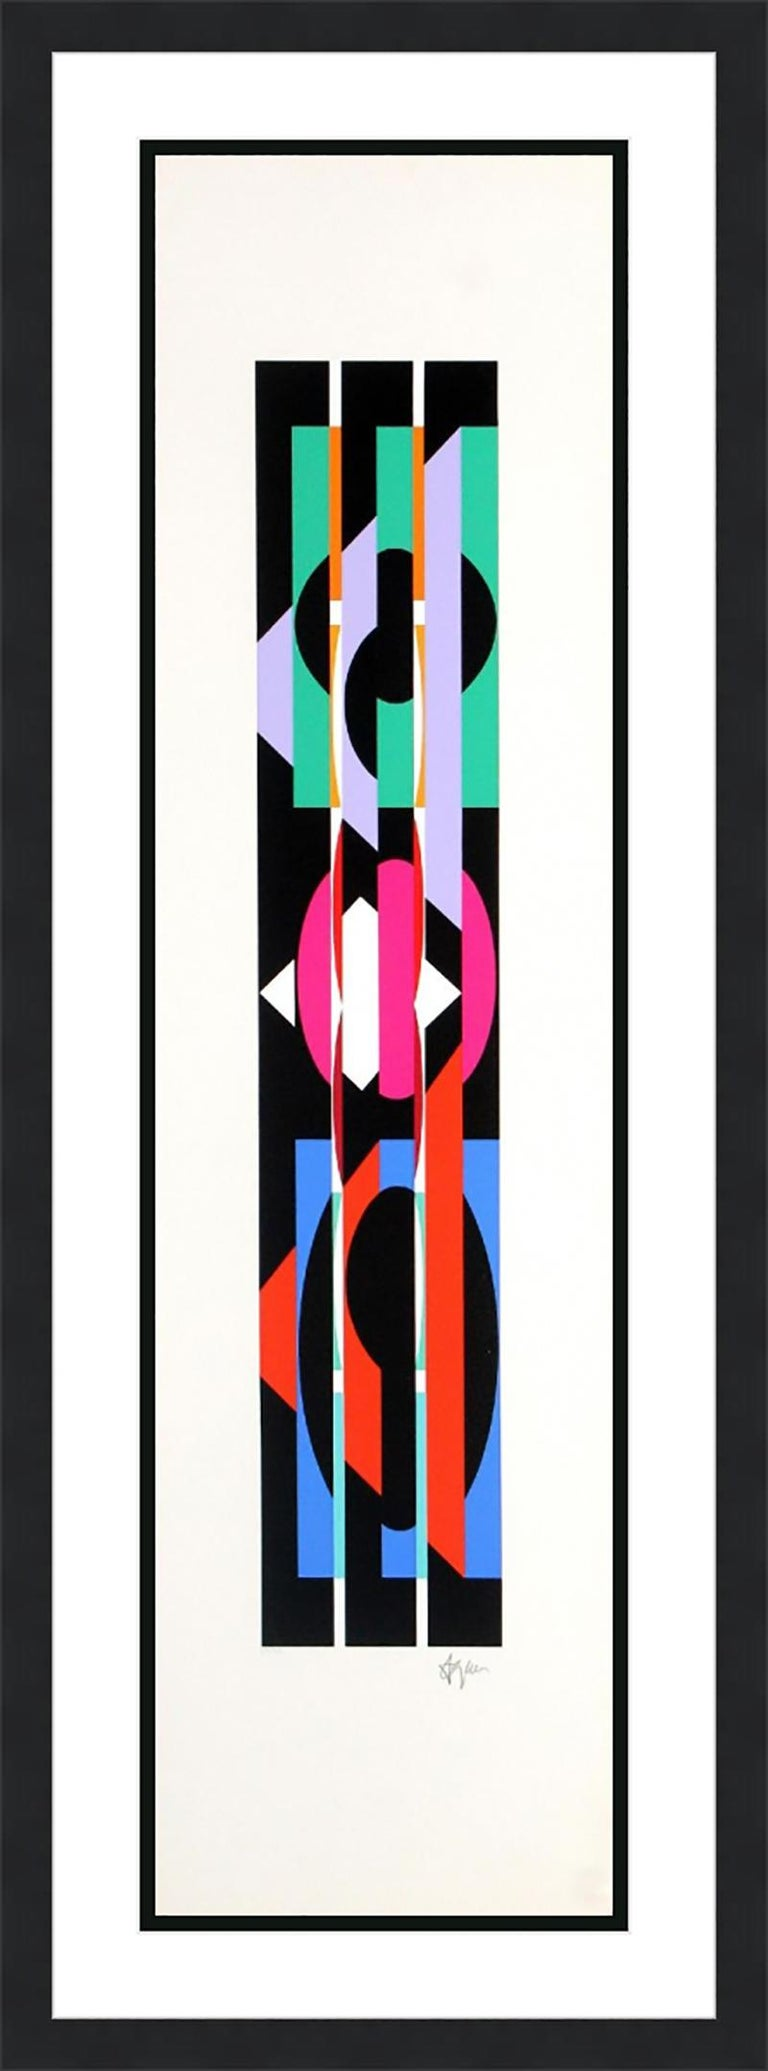 YAACOV AGAM  UNTITLED 4 FROM THE +-X9 SUITE  SIGNED AND NUMBERED - Print by Agam Yaacov